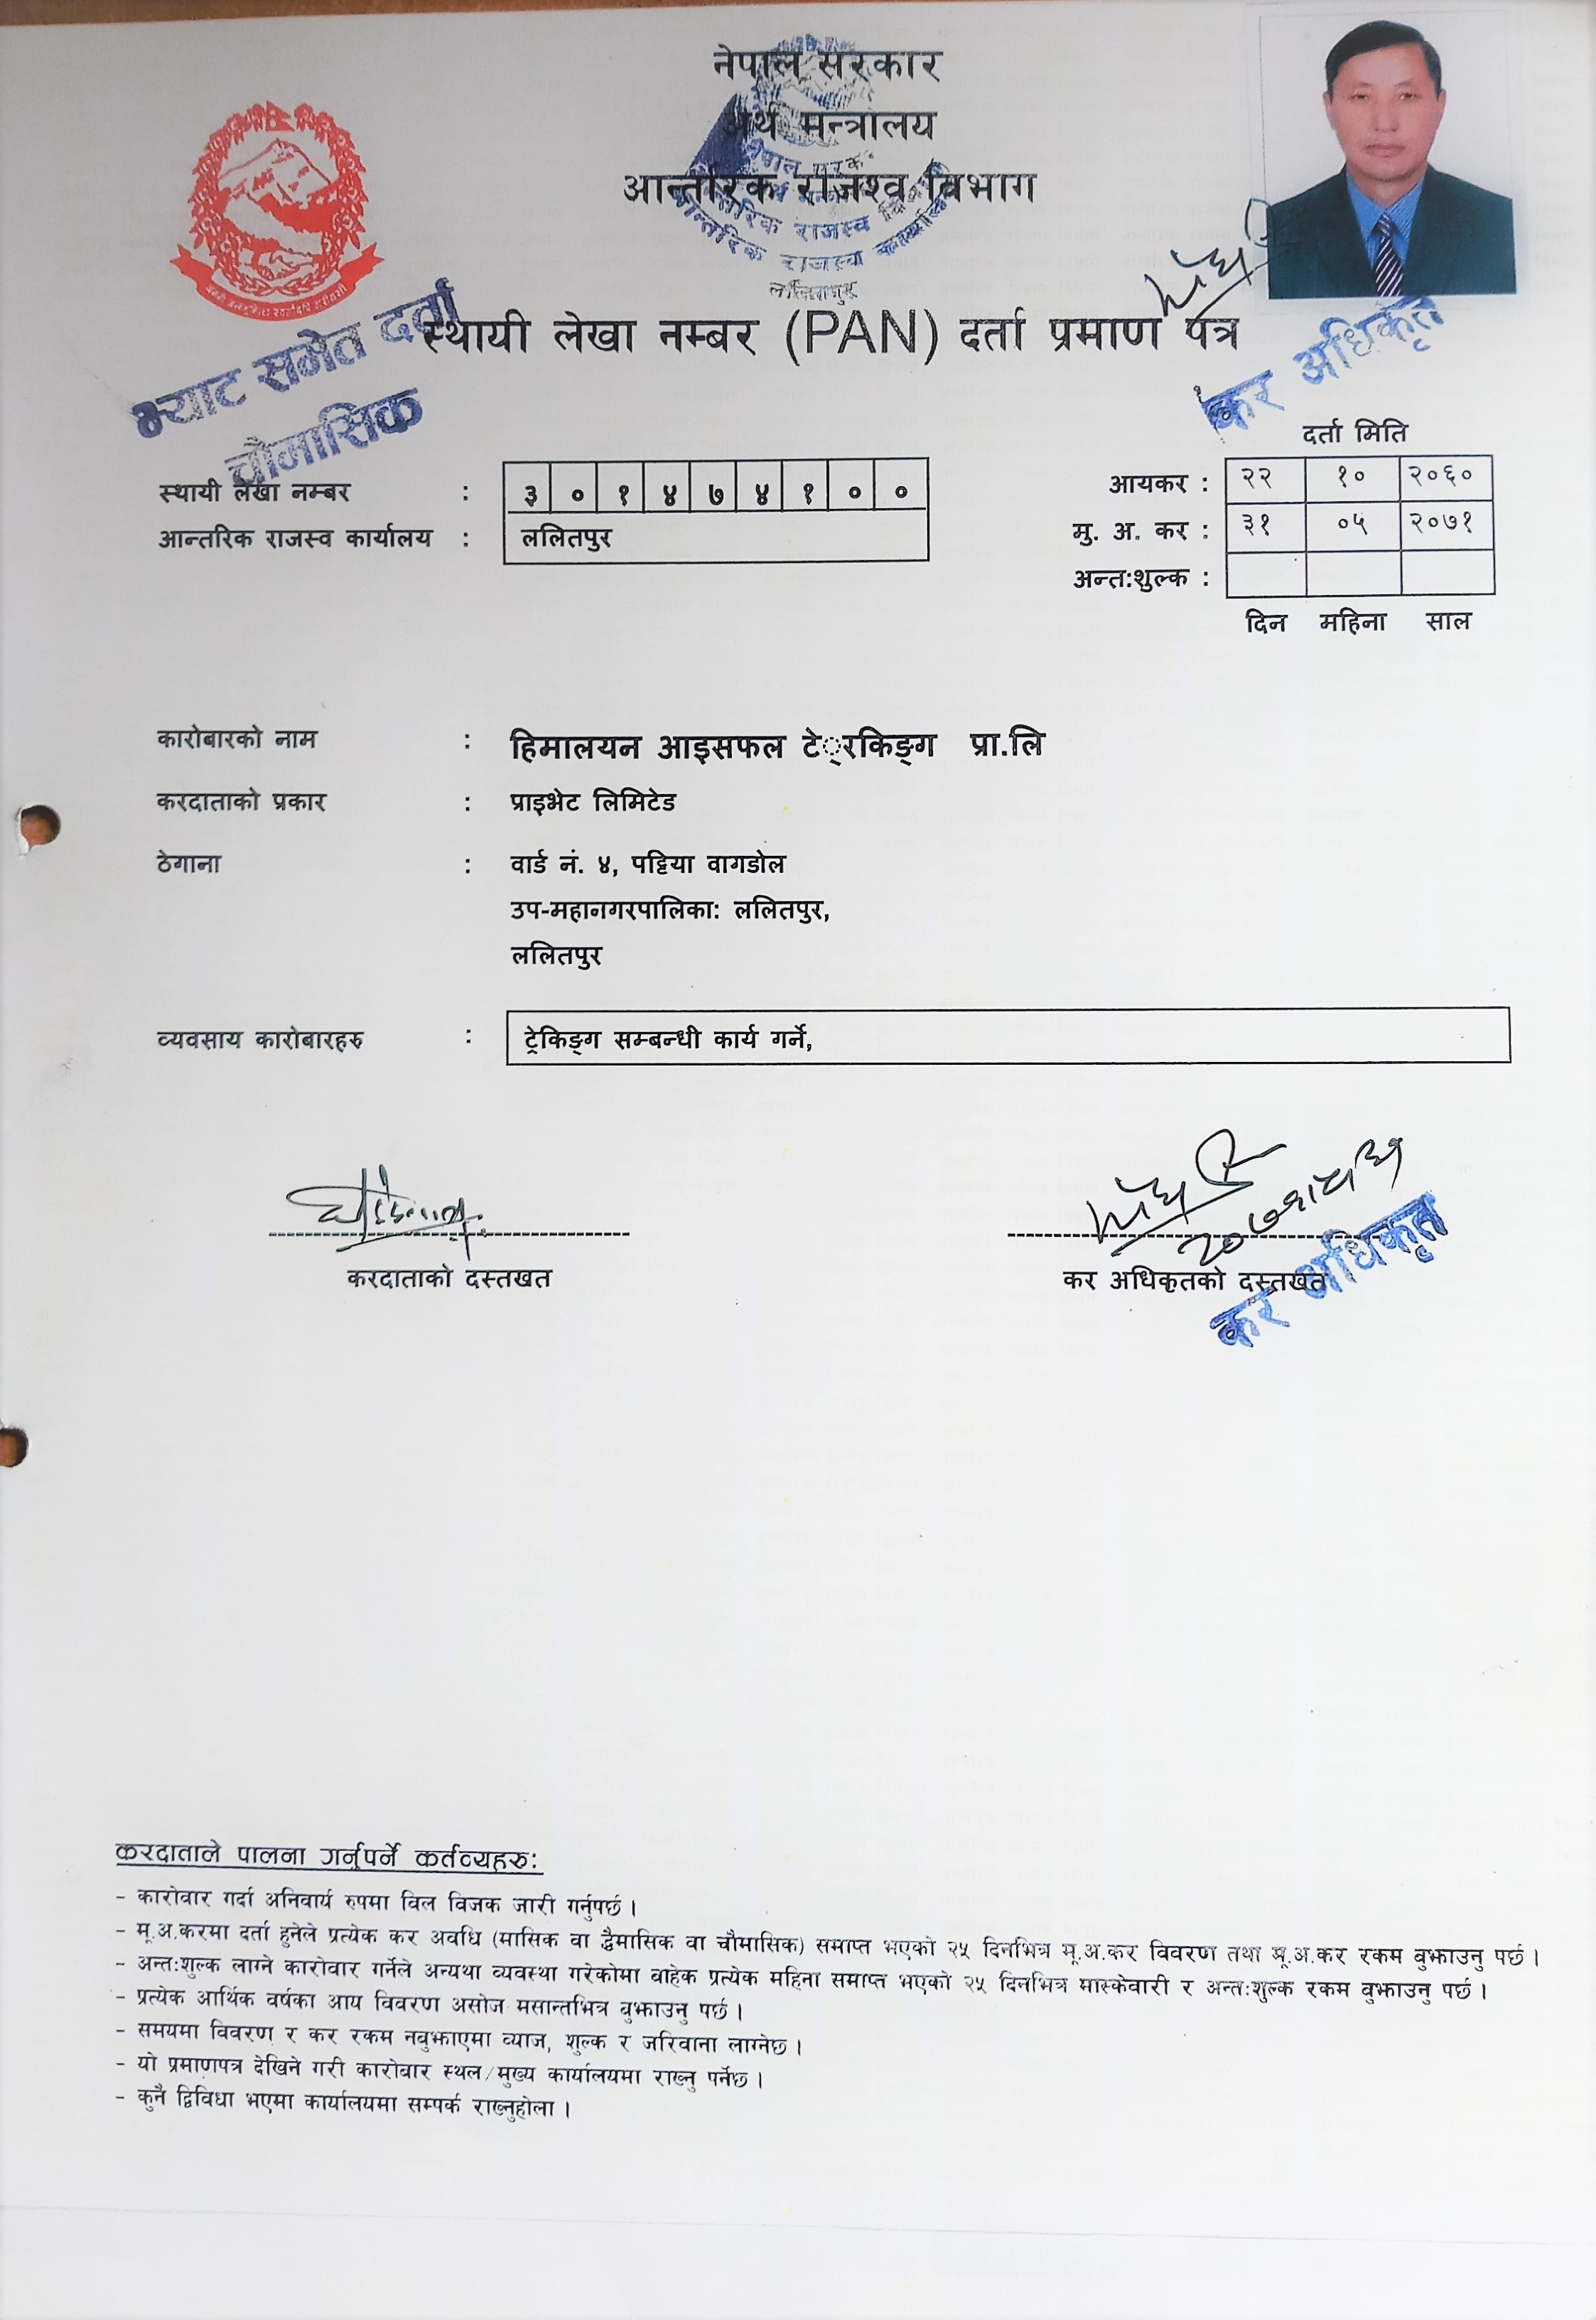 Government of Nepal, Inland Revenue Department certificate